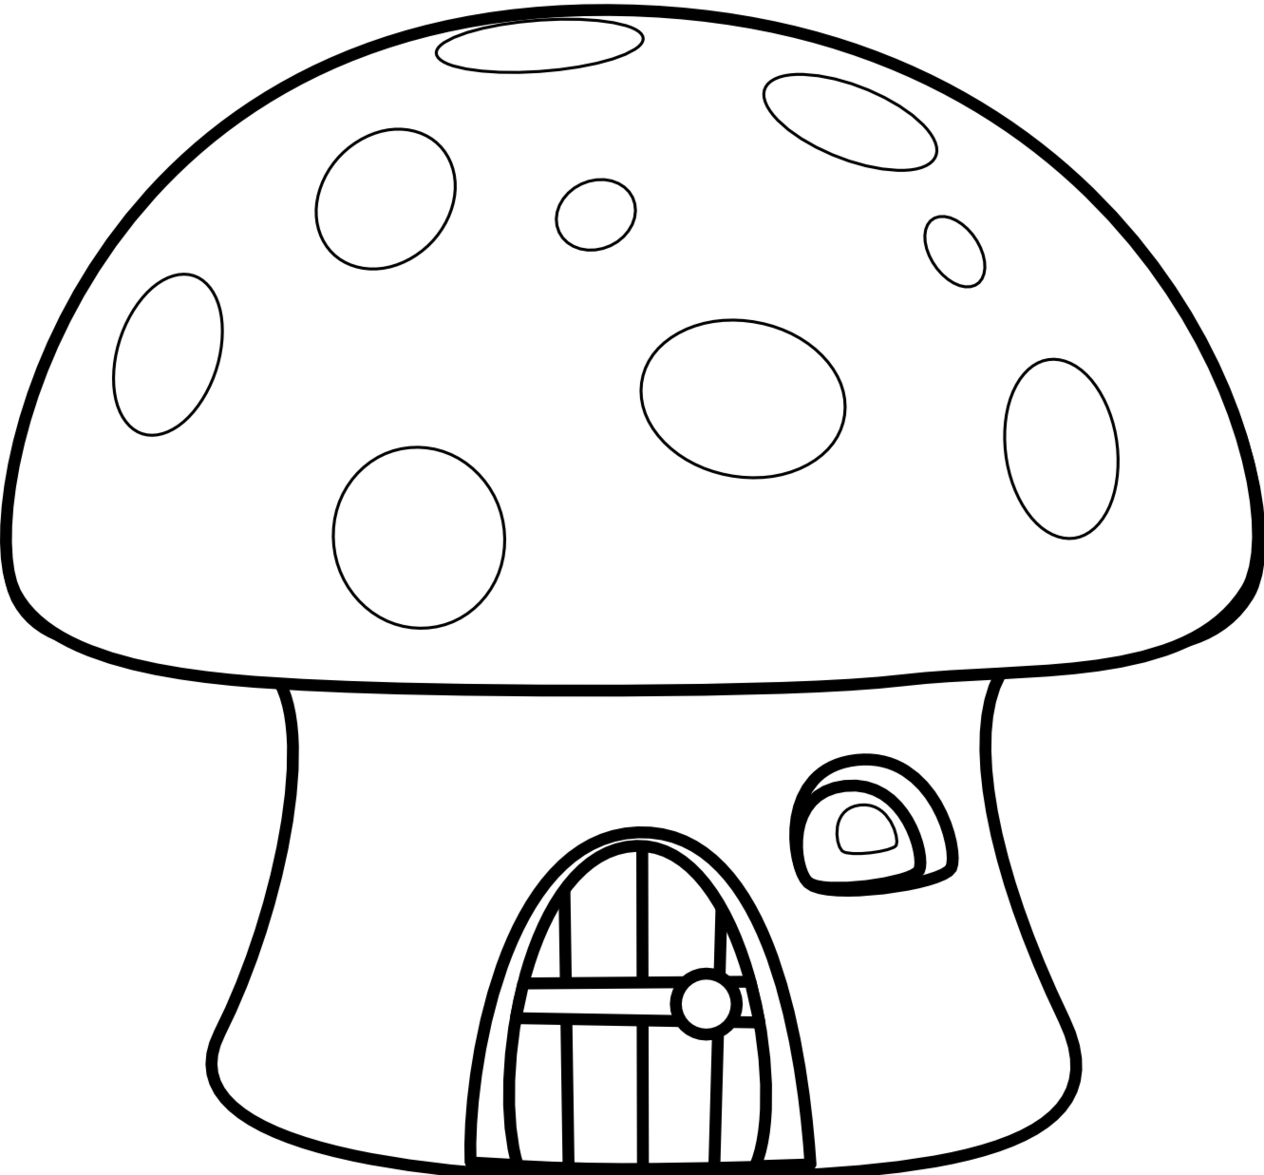 Drawing shrooms black and white. Collection of mushroom